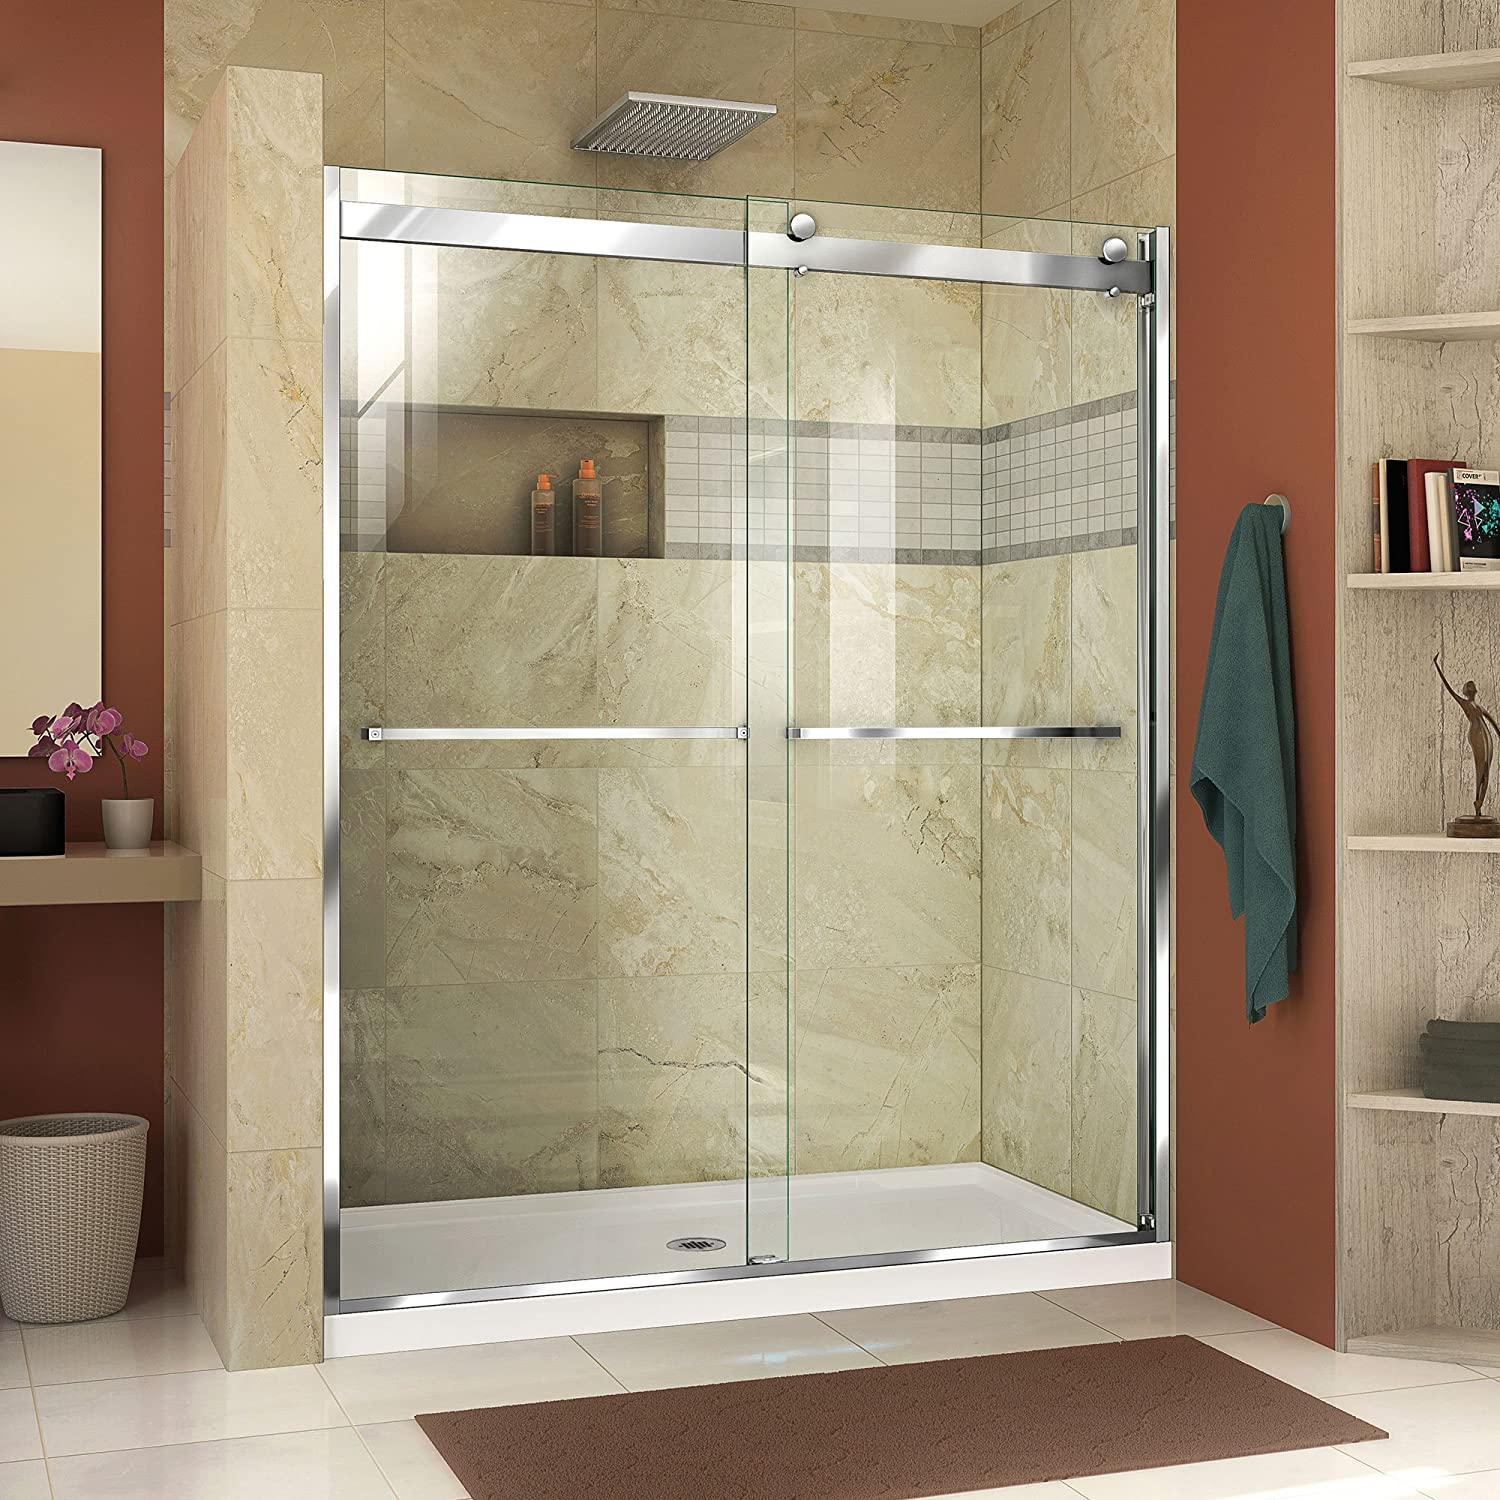 DreamLine SHDR-634876H-01 Essence-H 44-48 W x 76 H Frameless Bypass Shower Door, Chrome